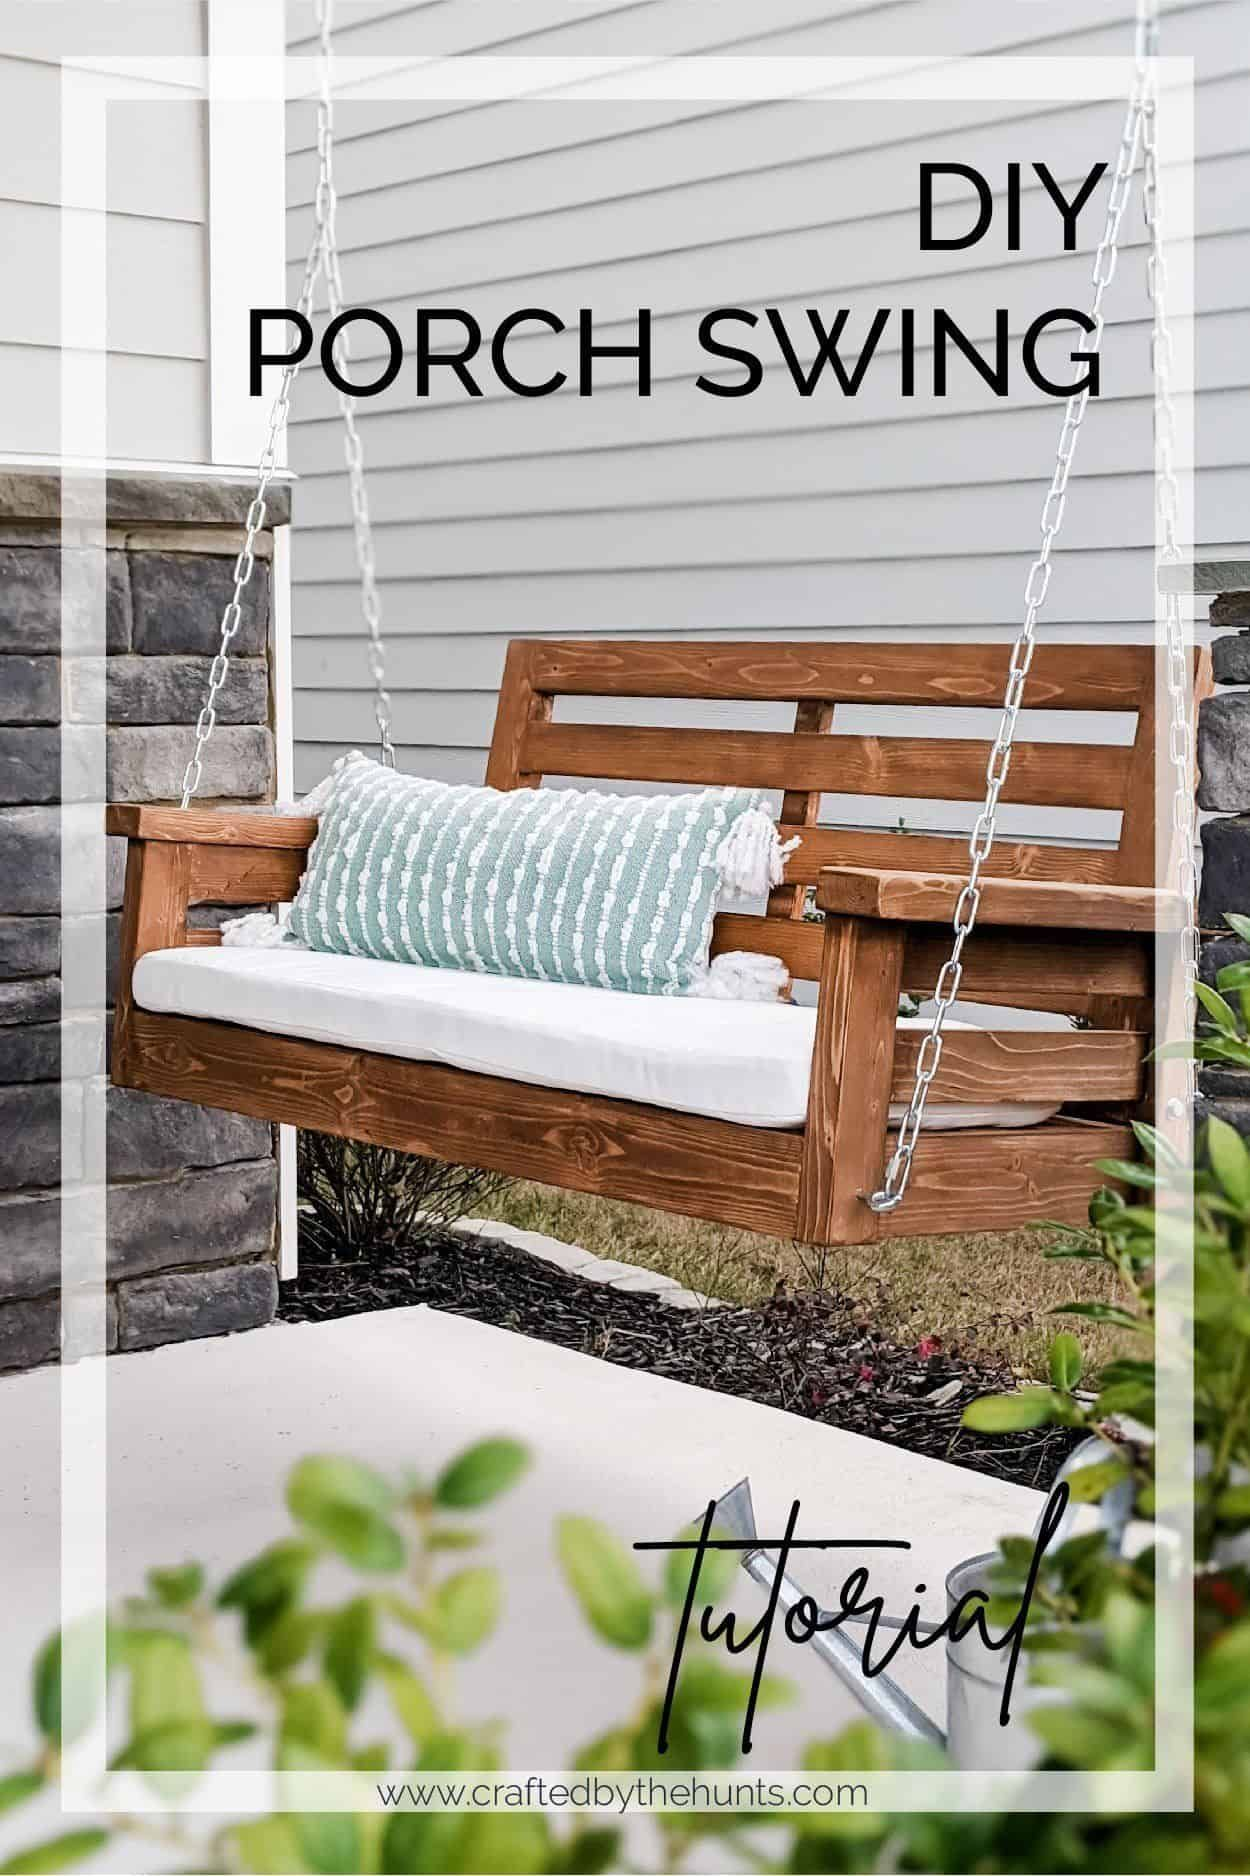 Diy Porch Swing Plans Crafted By The Hunts In 2020 Diy Porch Swing Plans Diy Porch Swing Porch Swing Plans